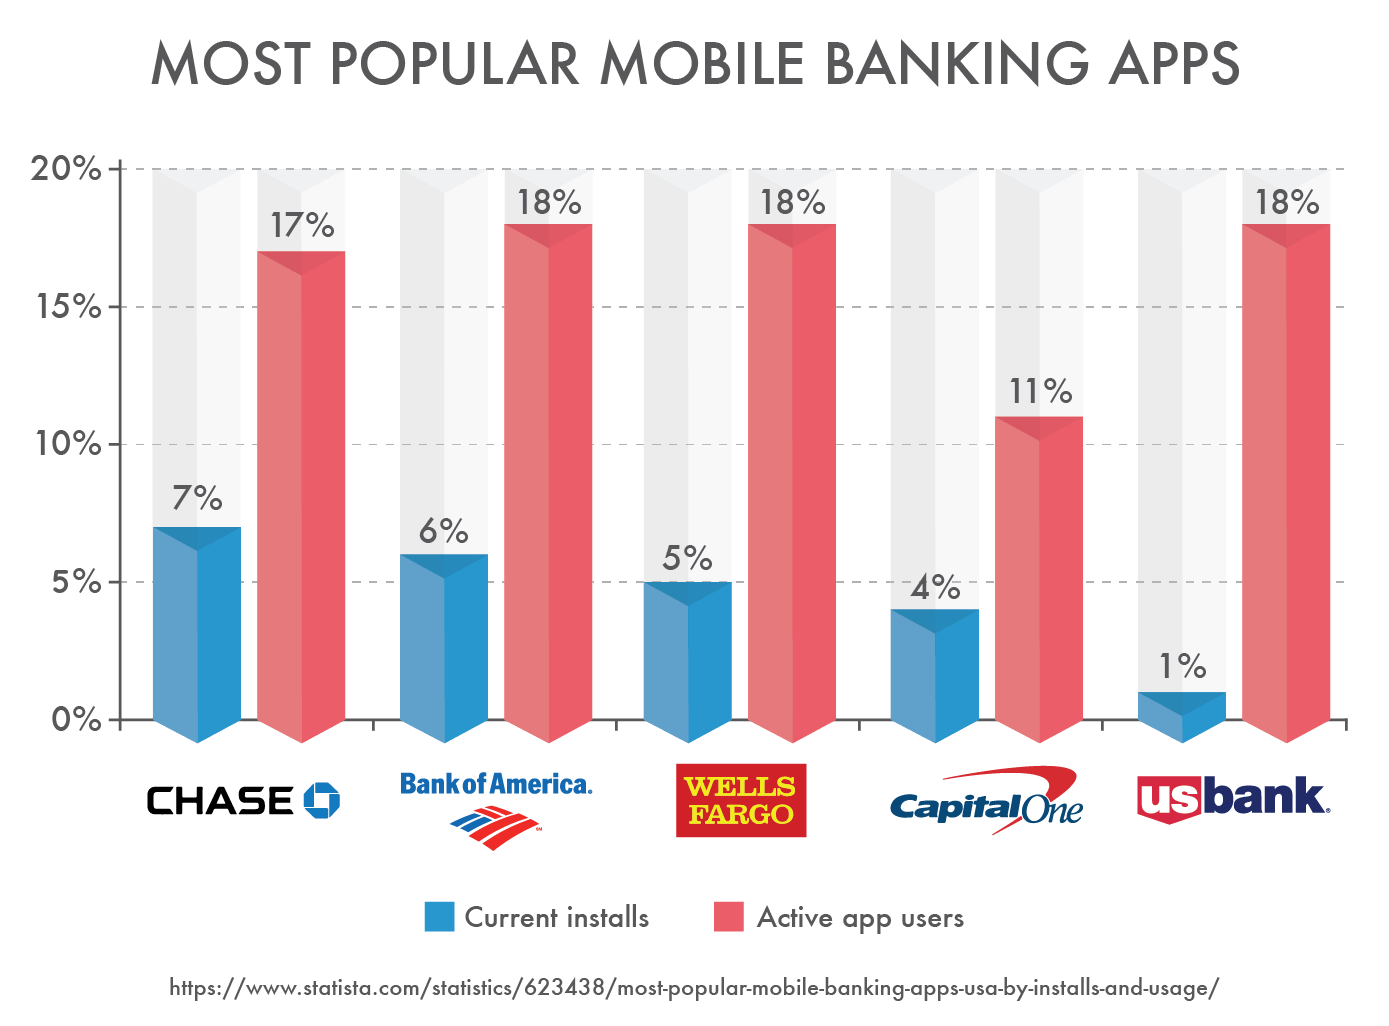 Most Popular Mobile Banking Apps